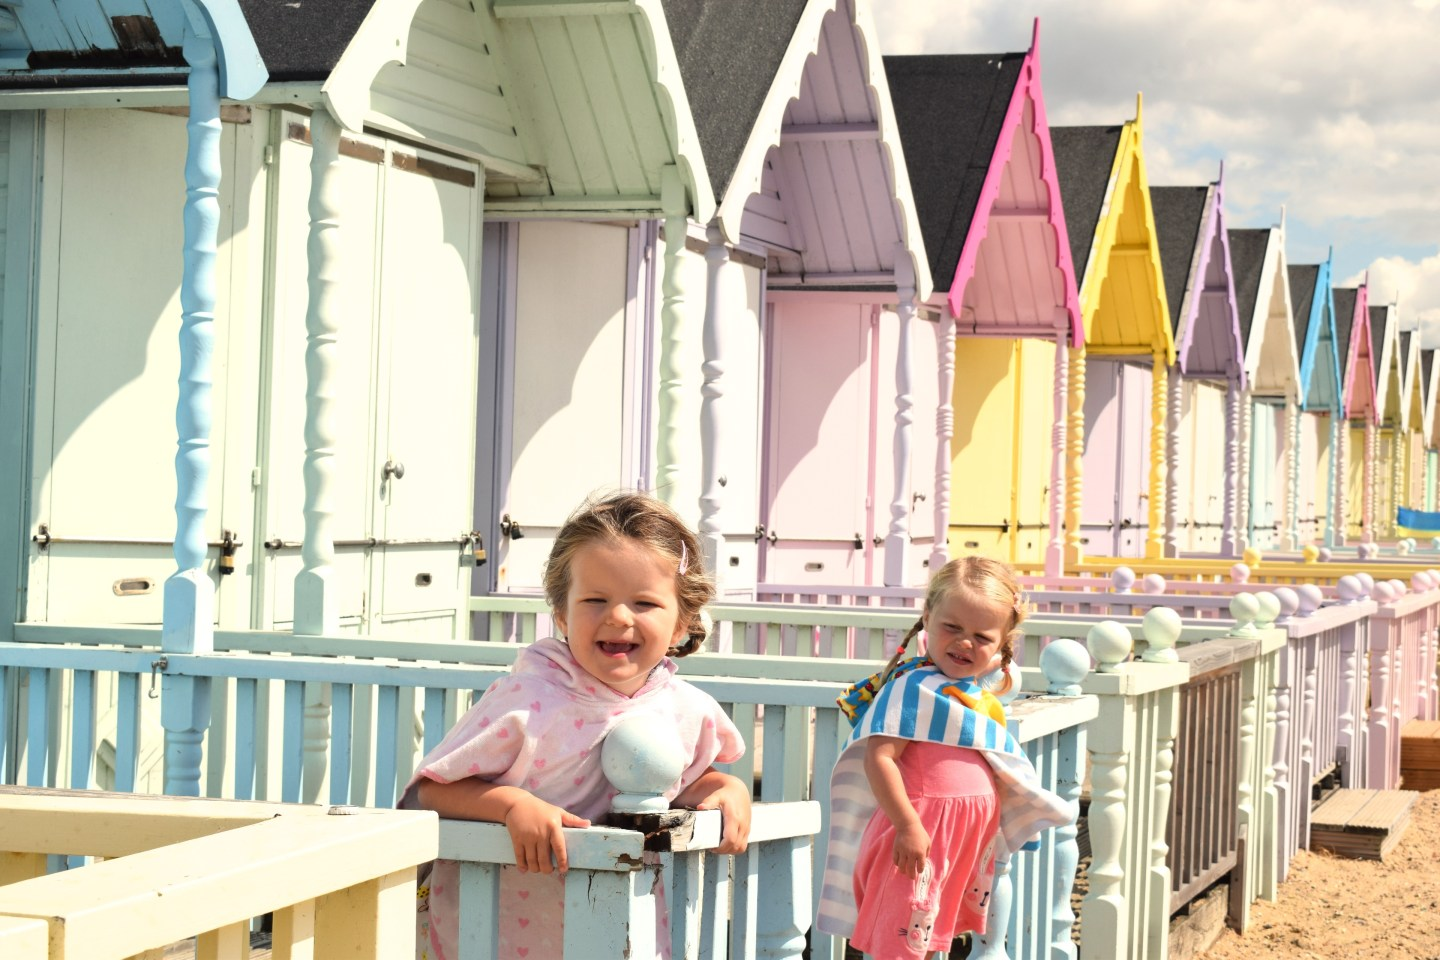 two little girls on the decking of a beach hut, leaning on the balustrade